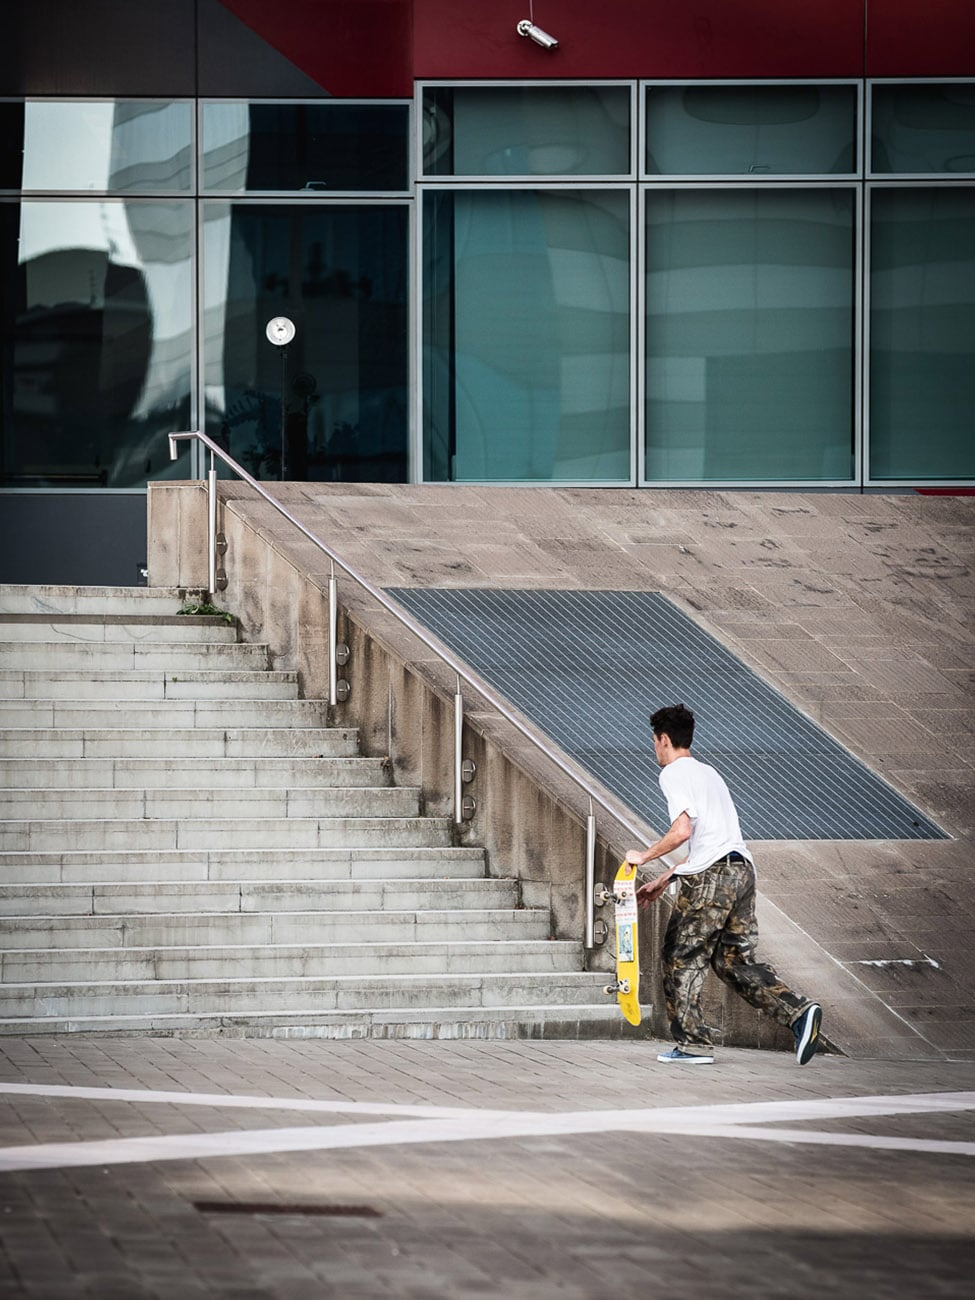 deaf-chips-irregularskatemag-milano-tour-hannes-mautner-photo-323